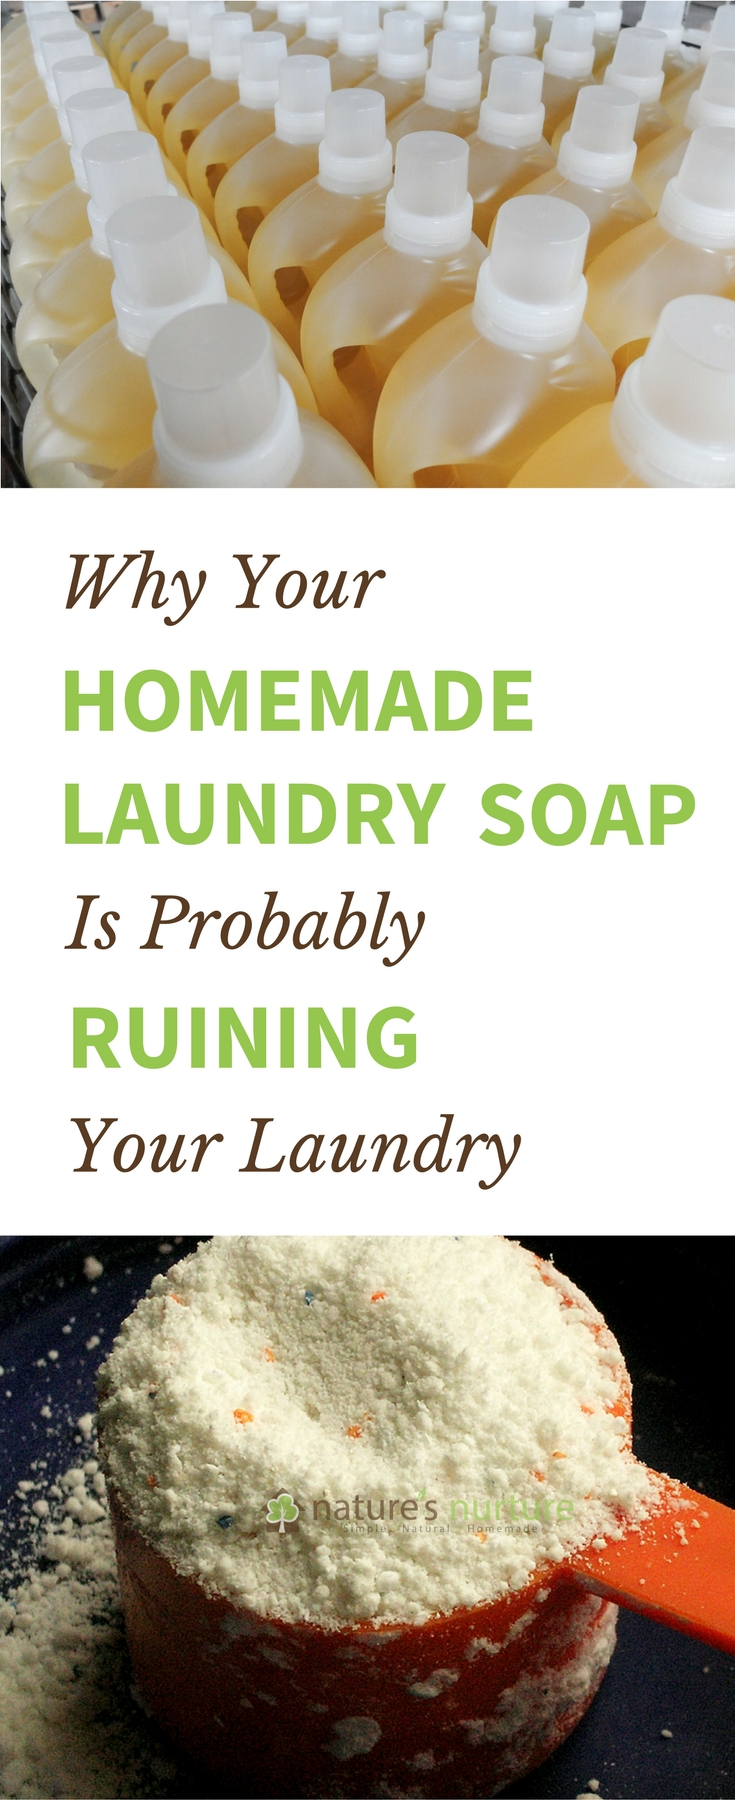 If you're using homemade laundry soap, make sure you read this! There's a dirty little secret hiding in that soap!